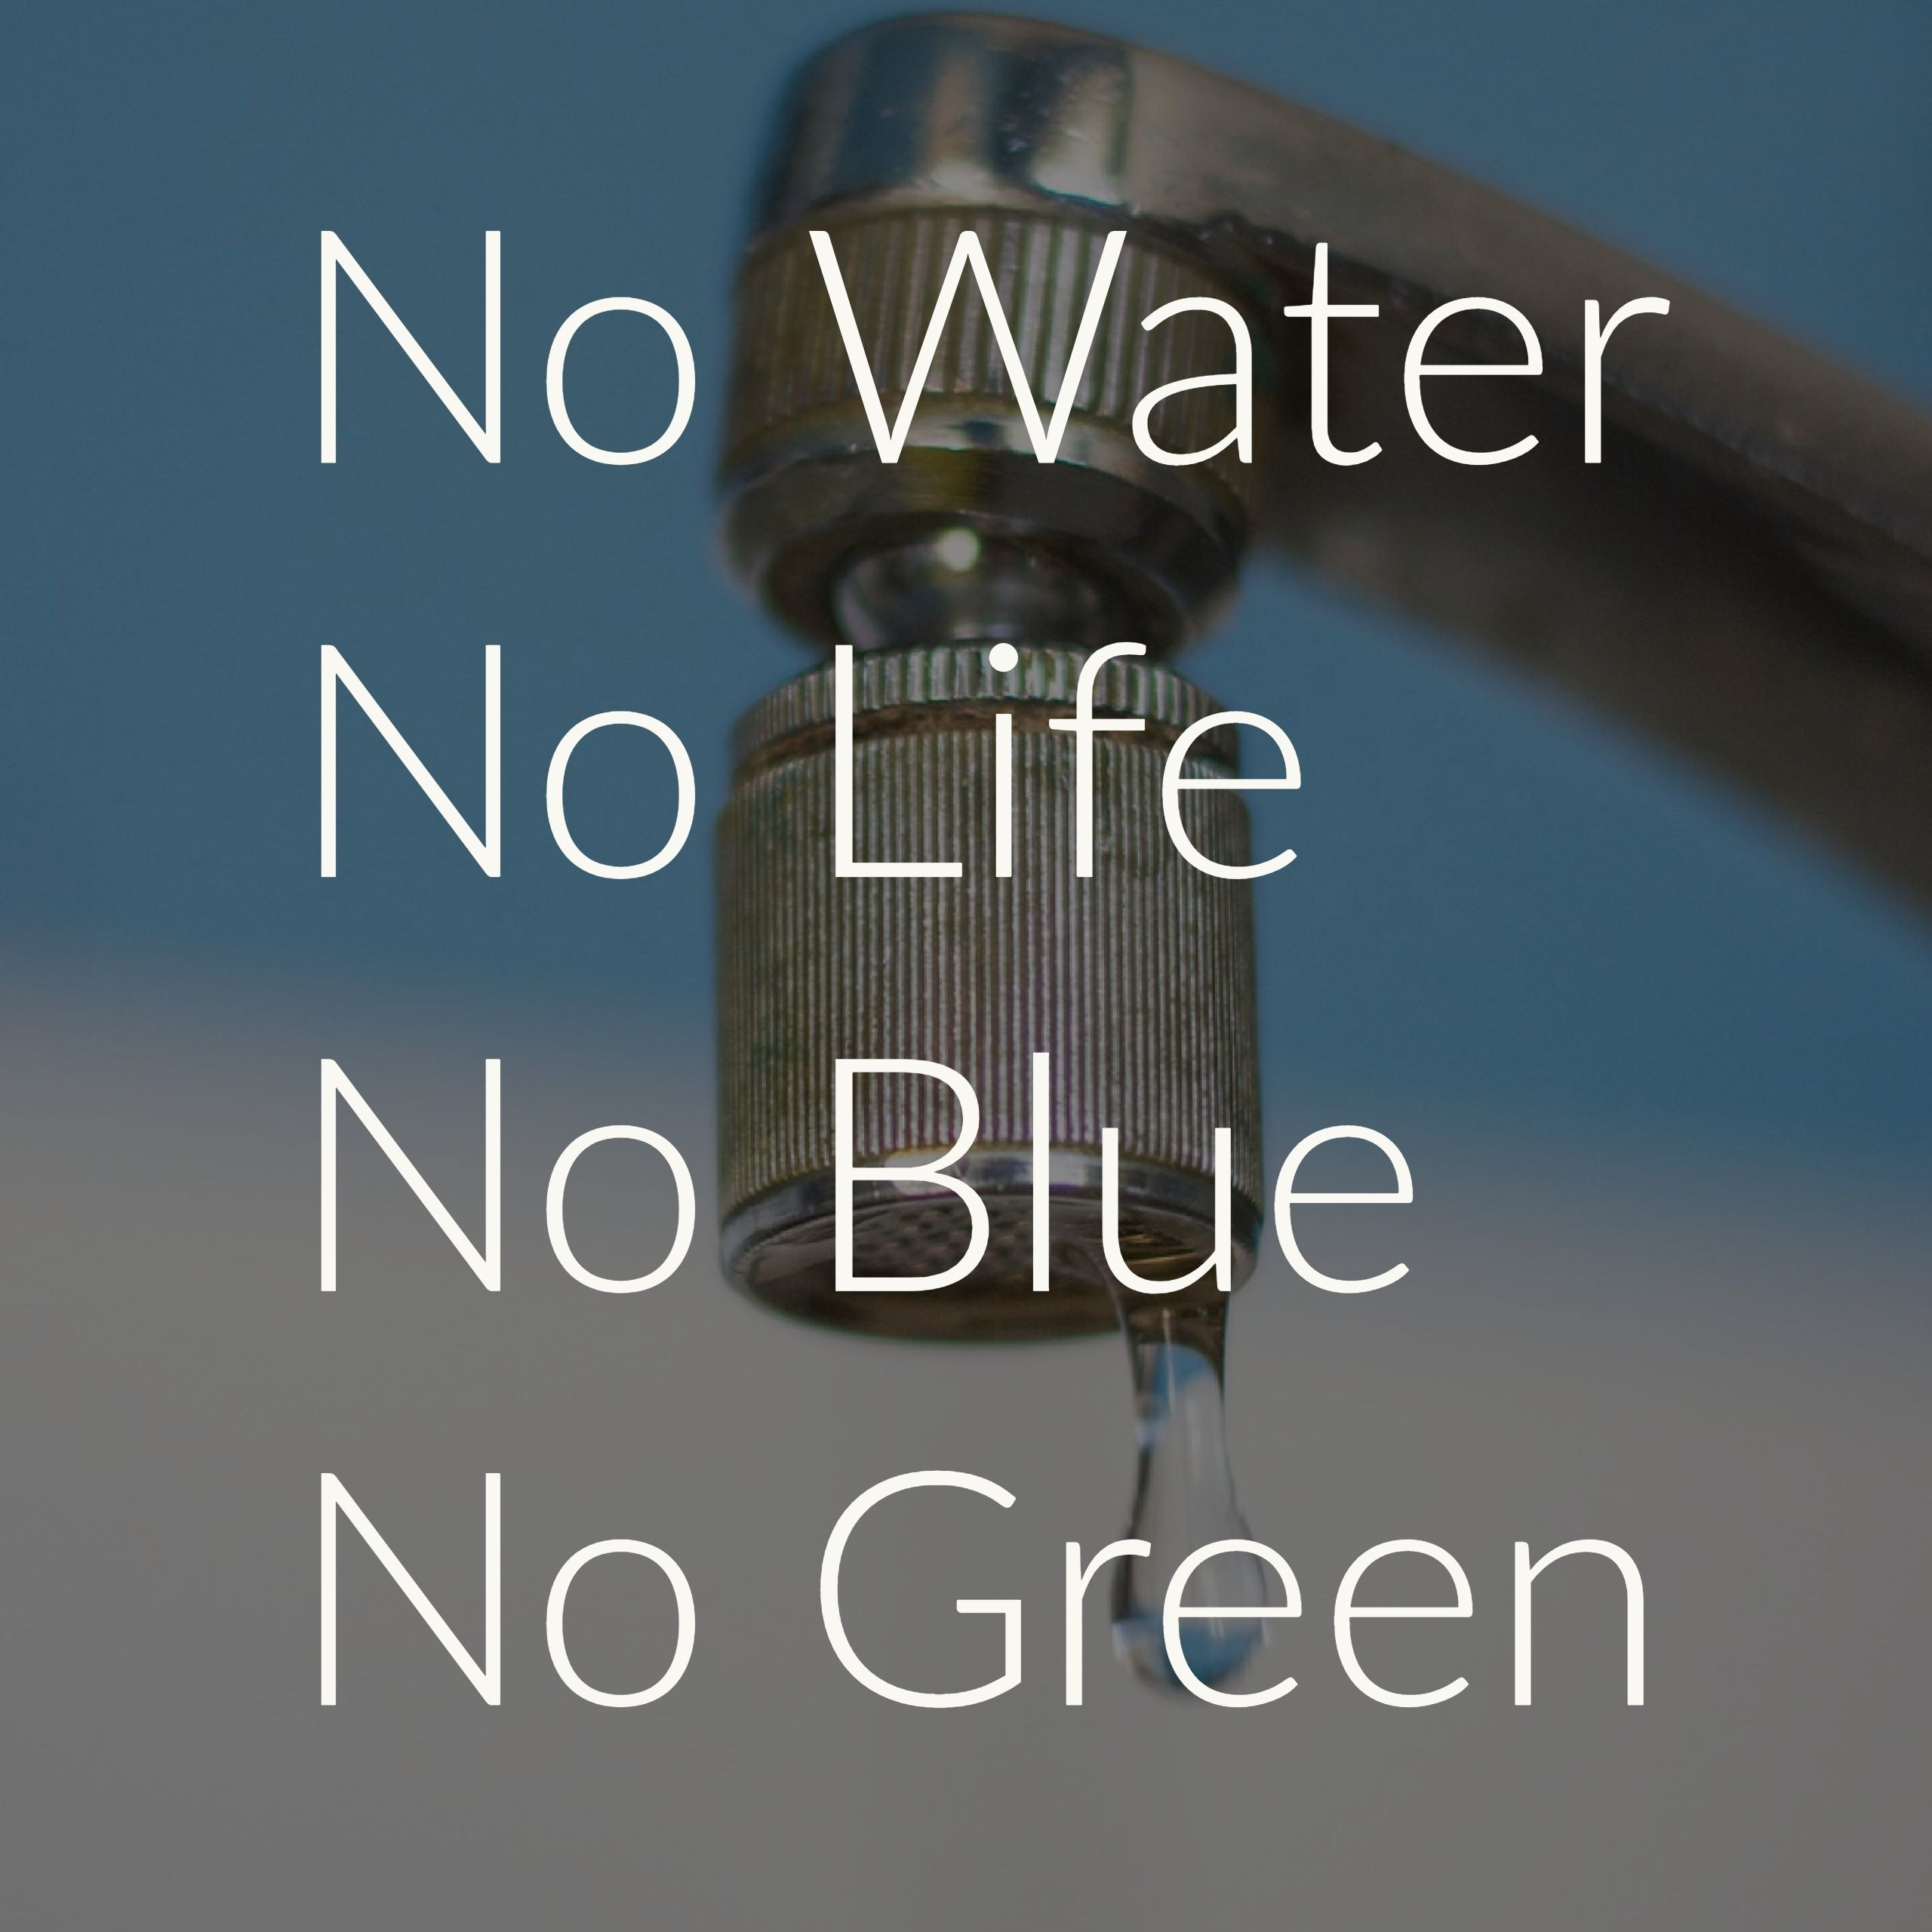 World Water Day Is About Focusing Attention On The Importance Of